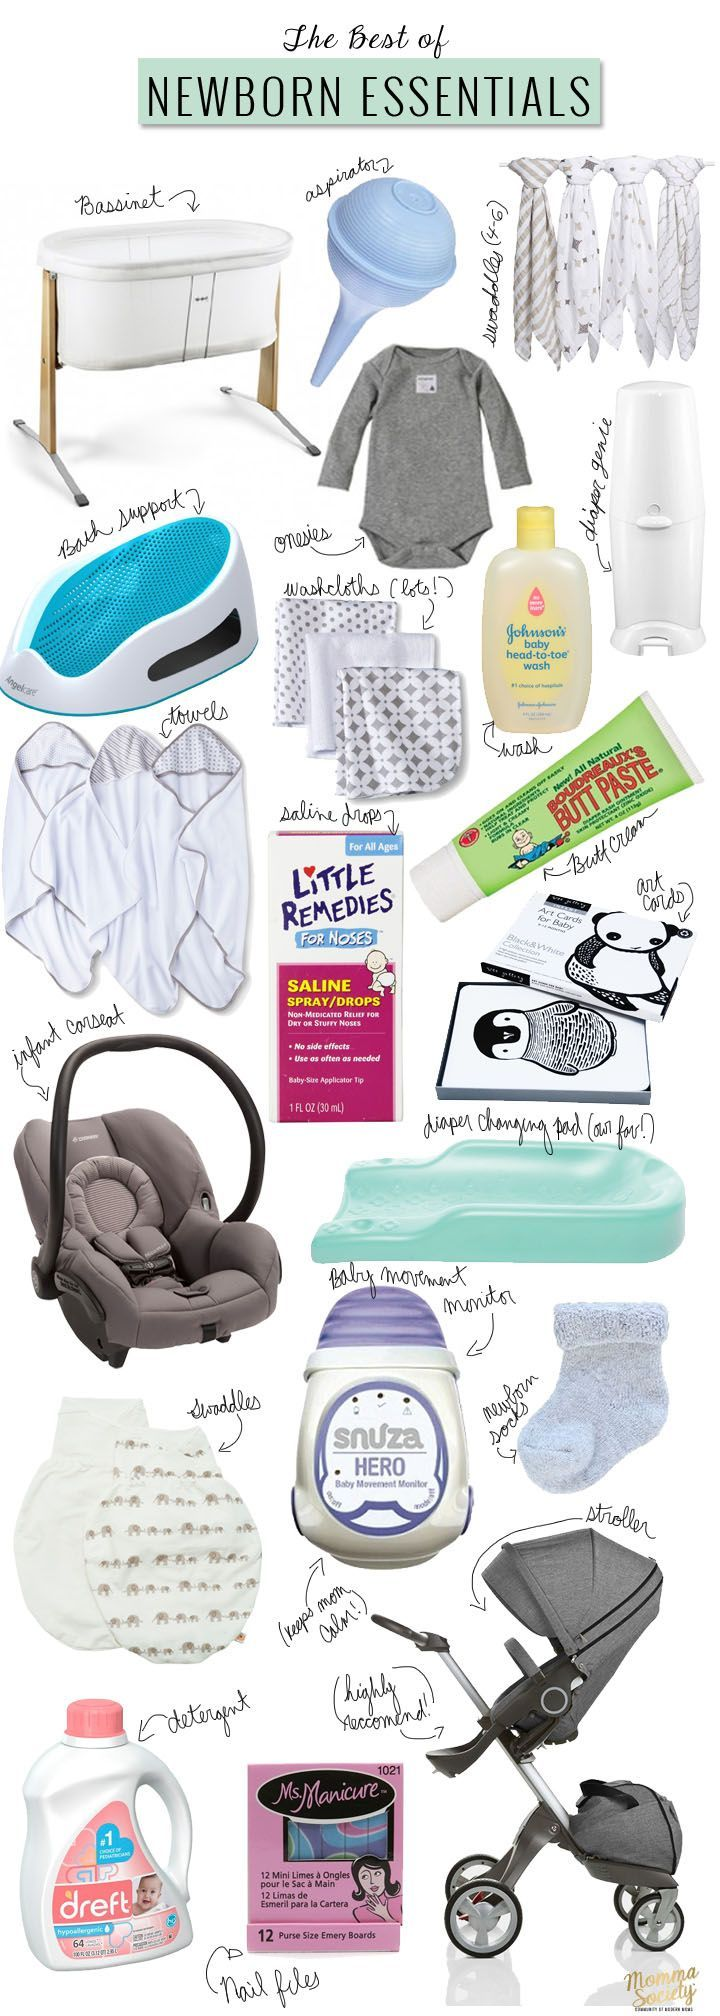 Newborn Essentials for Surviving the First Month of Motherhood | Momma Society- The Community of Modern Moms